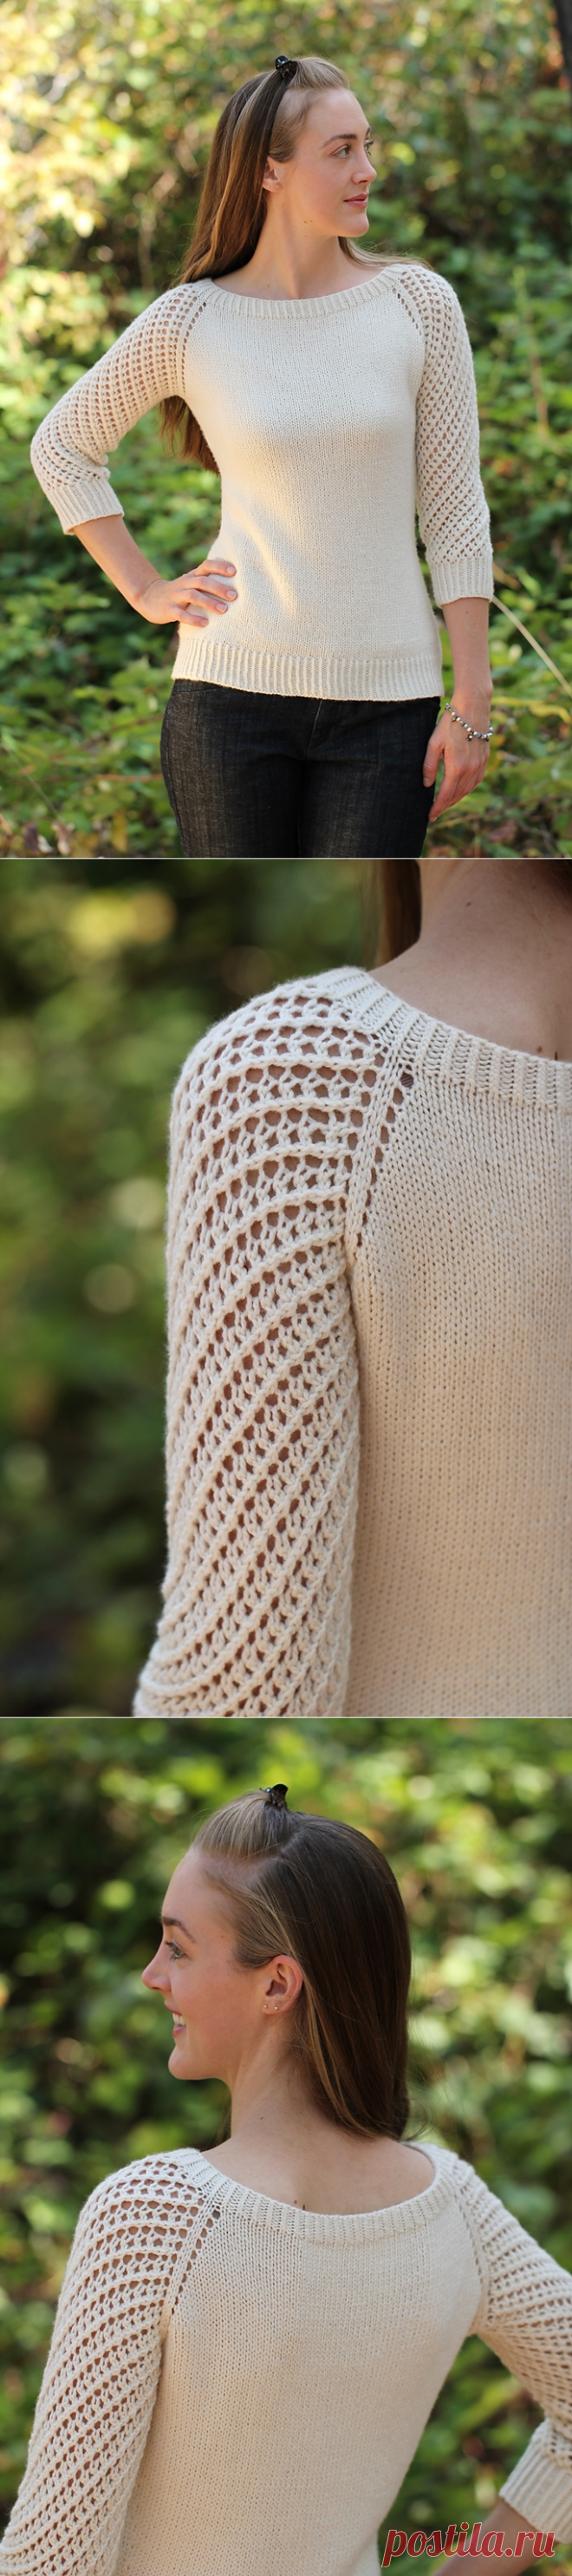 Knitted pullover of Deodara with a sleeve a raglan in an openwork grid from the designer of Maria Olson.